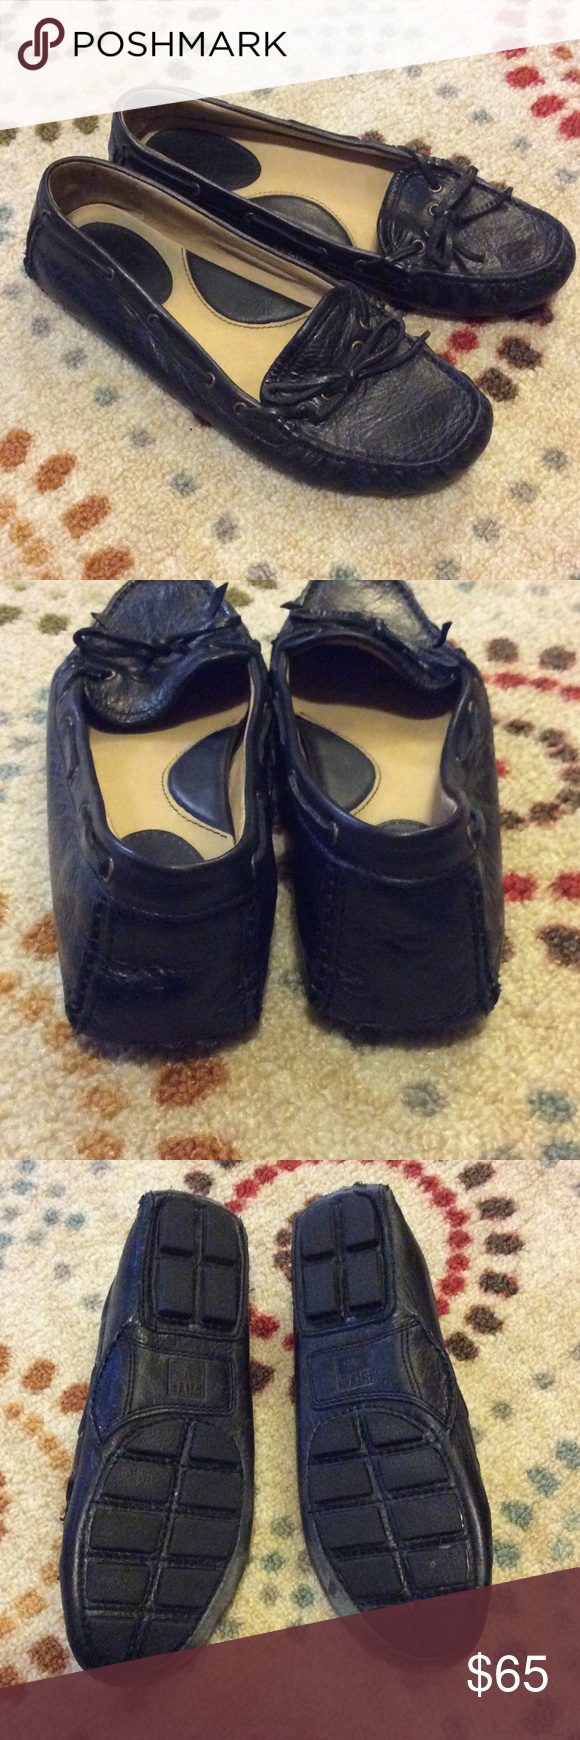 Frye Leather Moccasins Super cute and comfortable Frye moccasins.  These moccasins show some wear. Price reflects imperfections. Frye Shoes Moccasins